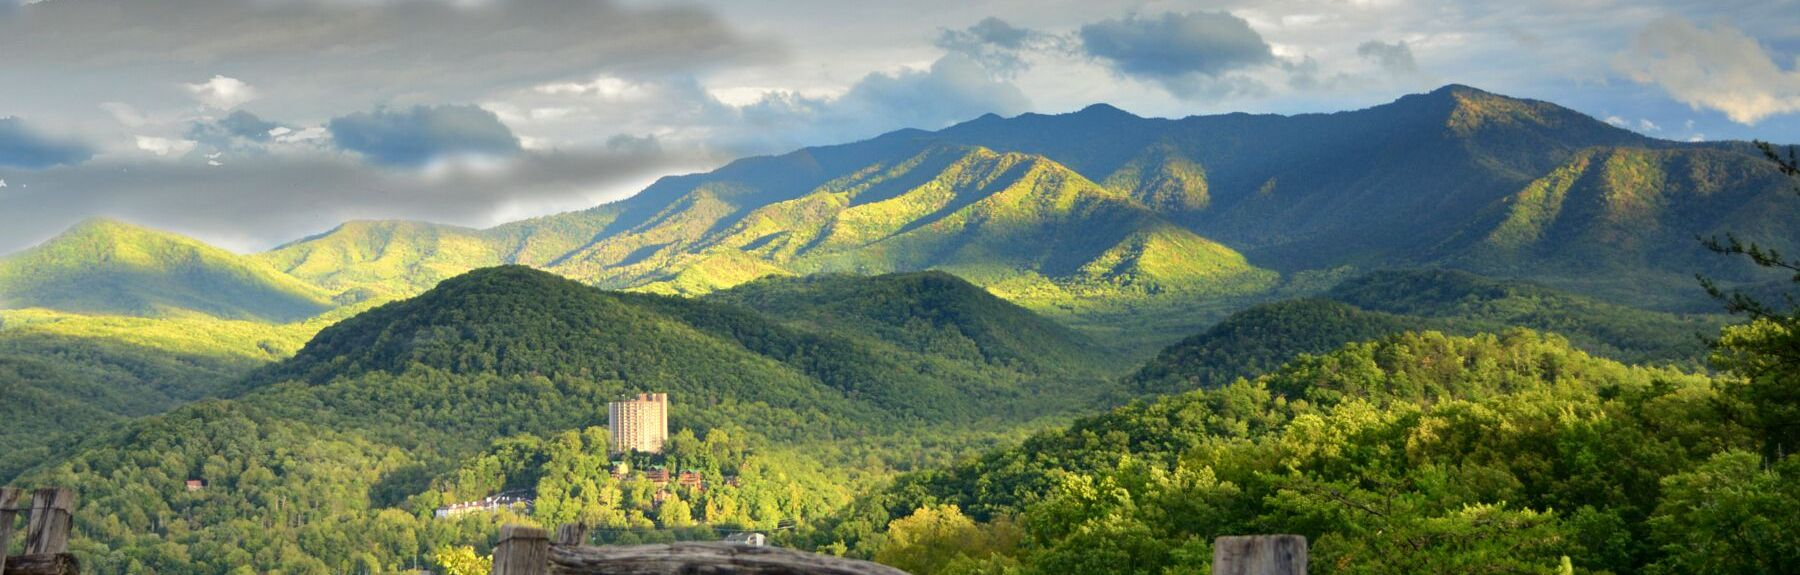 Gatlinburg, Tennessee, Estados Unidos